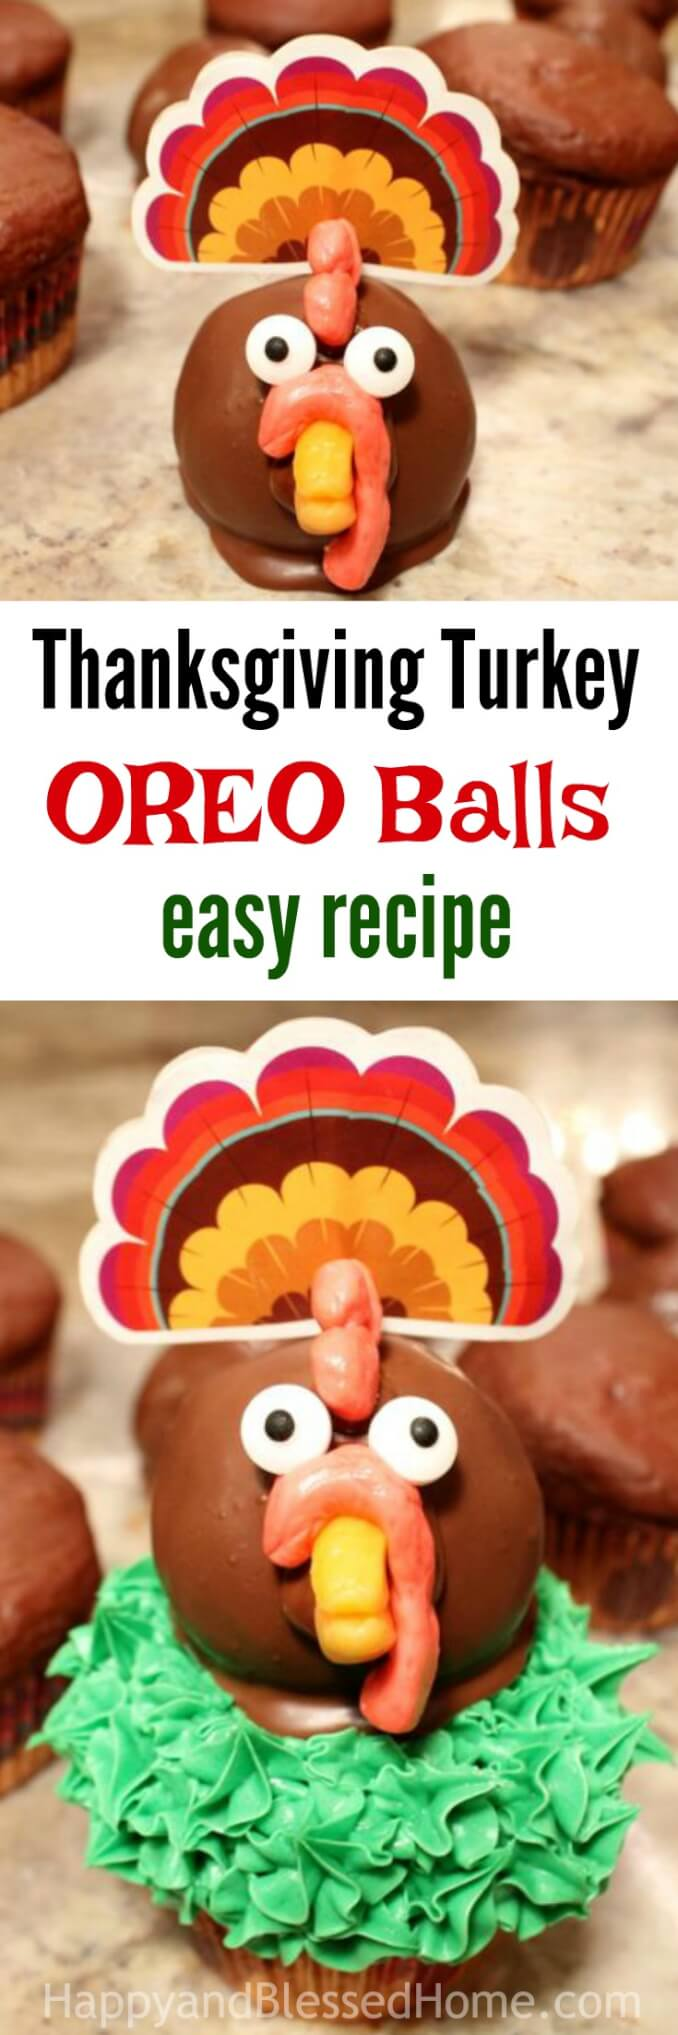 Thanksgiving Turkey Oreo Balls Recipe Tutorial - crunchy cookie center coated in chocolate and decorated with candy - the perfect cupcake topper!